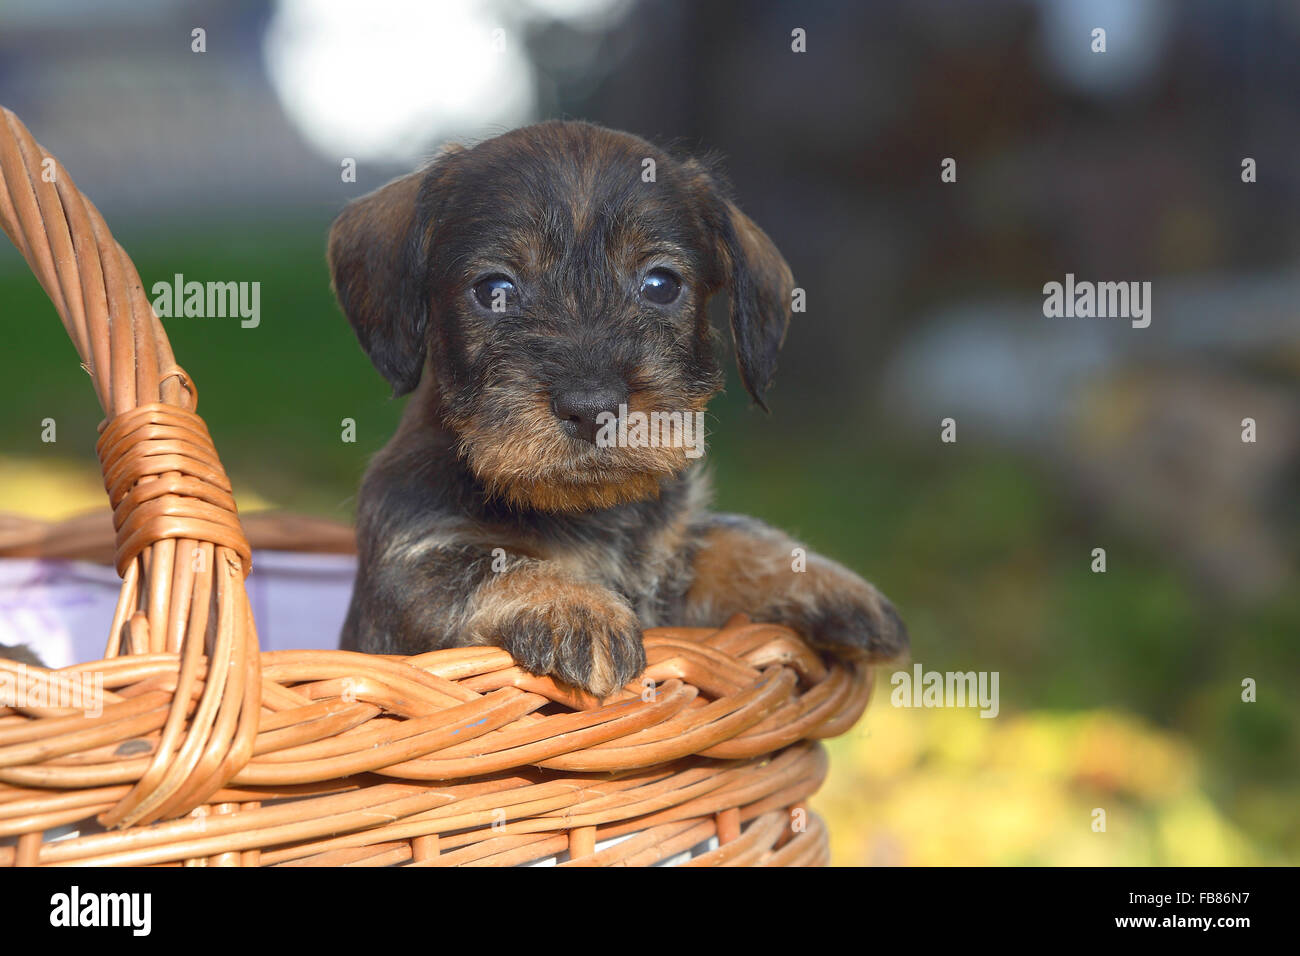 Dachshund (Canis lupus familiaris) puppy sitting in basket, Germany - Stock Image